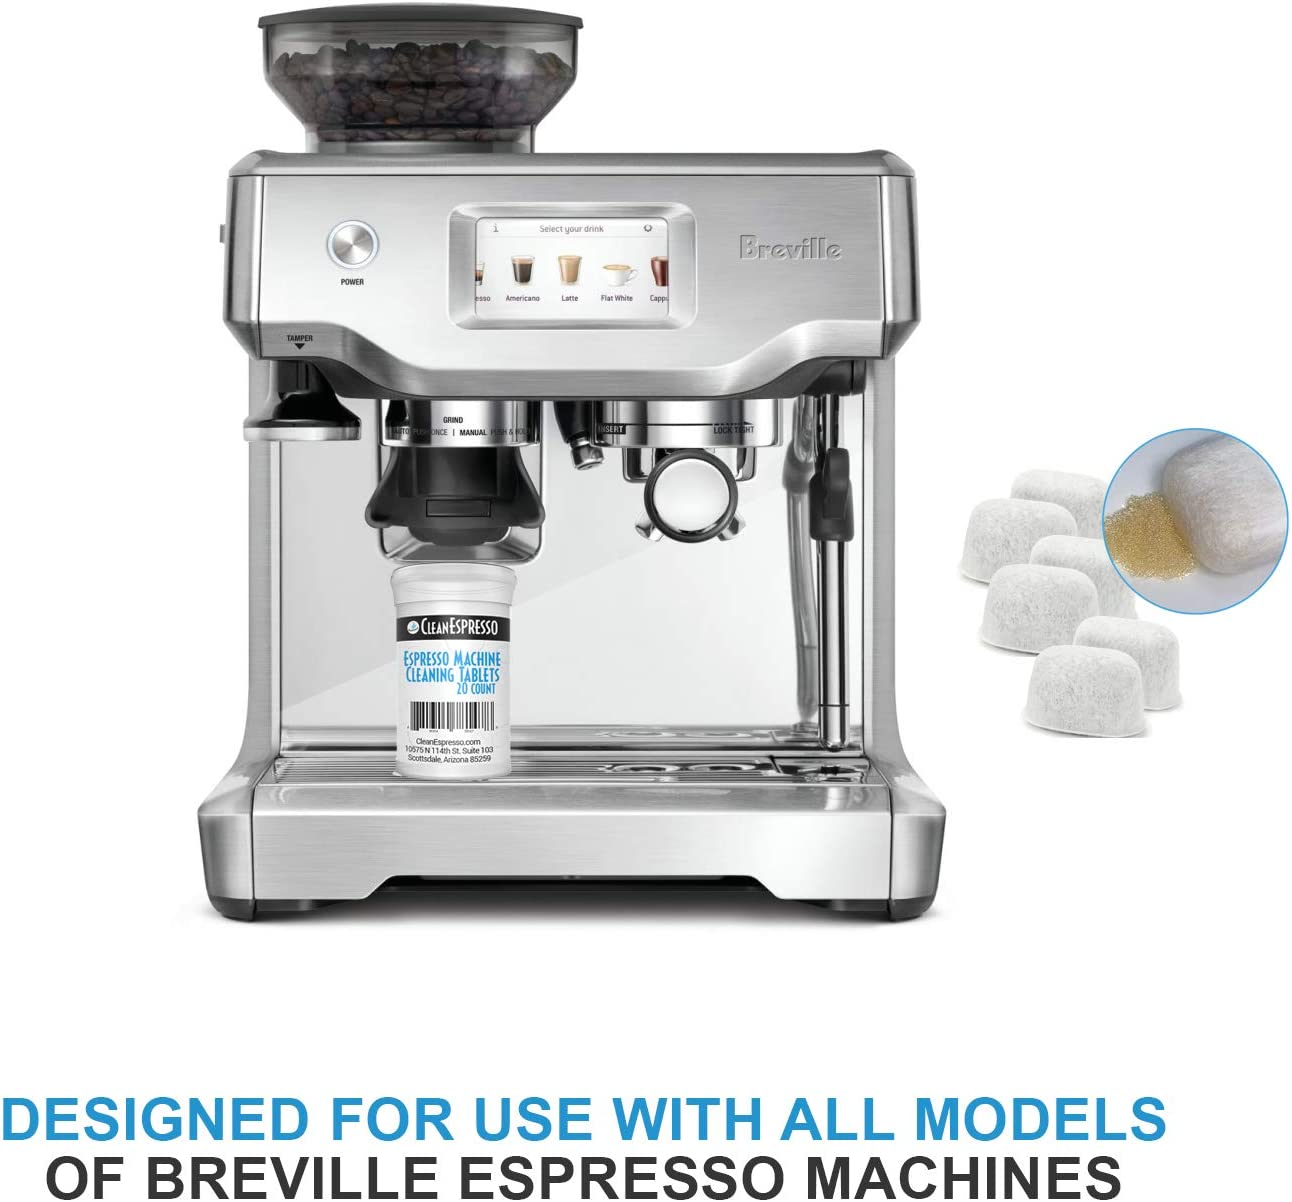 Amazon Com Breville Espresso Machine Cleaning Tablets Ion Exchange Resin Water Filter Breville Espresso Machine Accessories 20 Tablets 6 Ion Resin Filters Health Personal Care